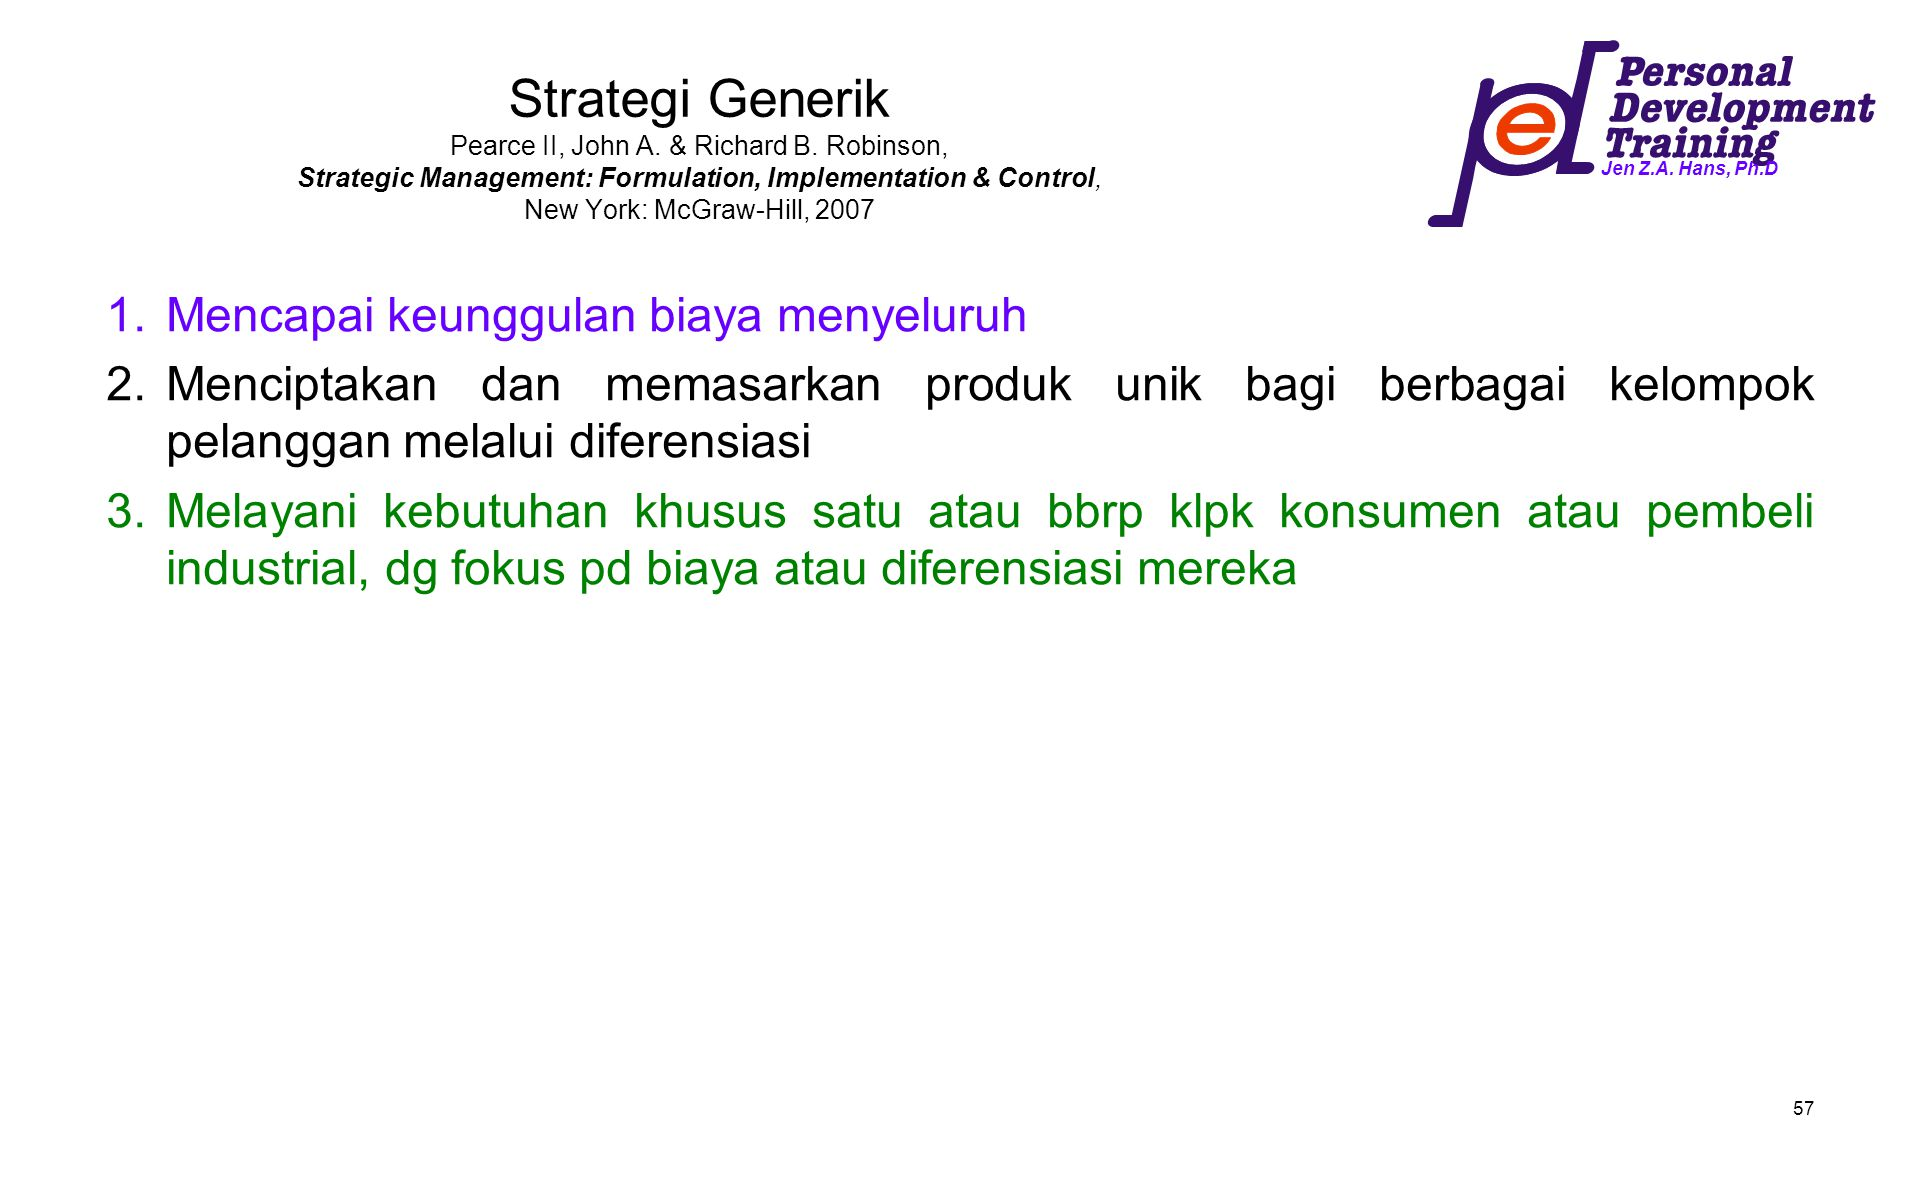 Strategi Generik Pearce II, John A. & Richard B